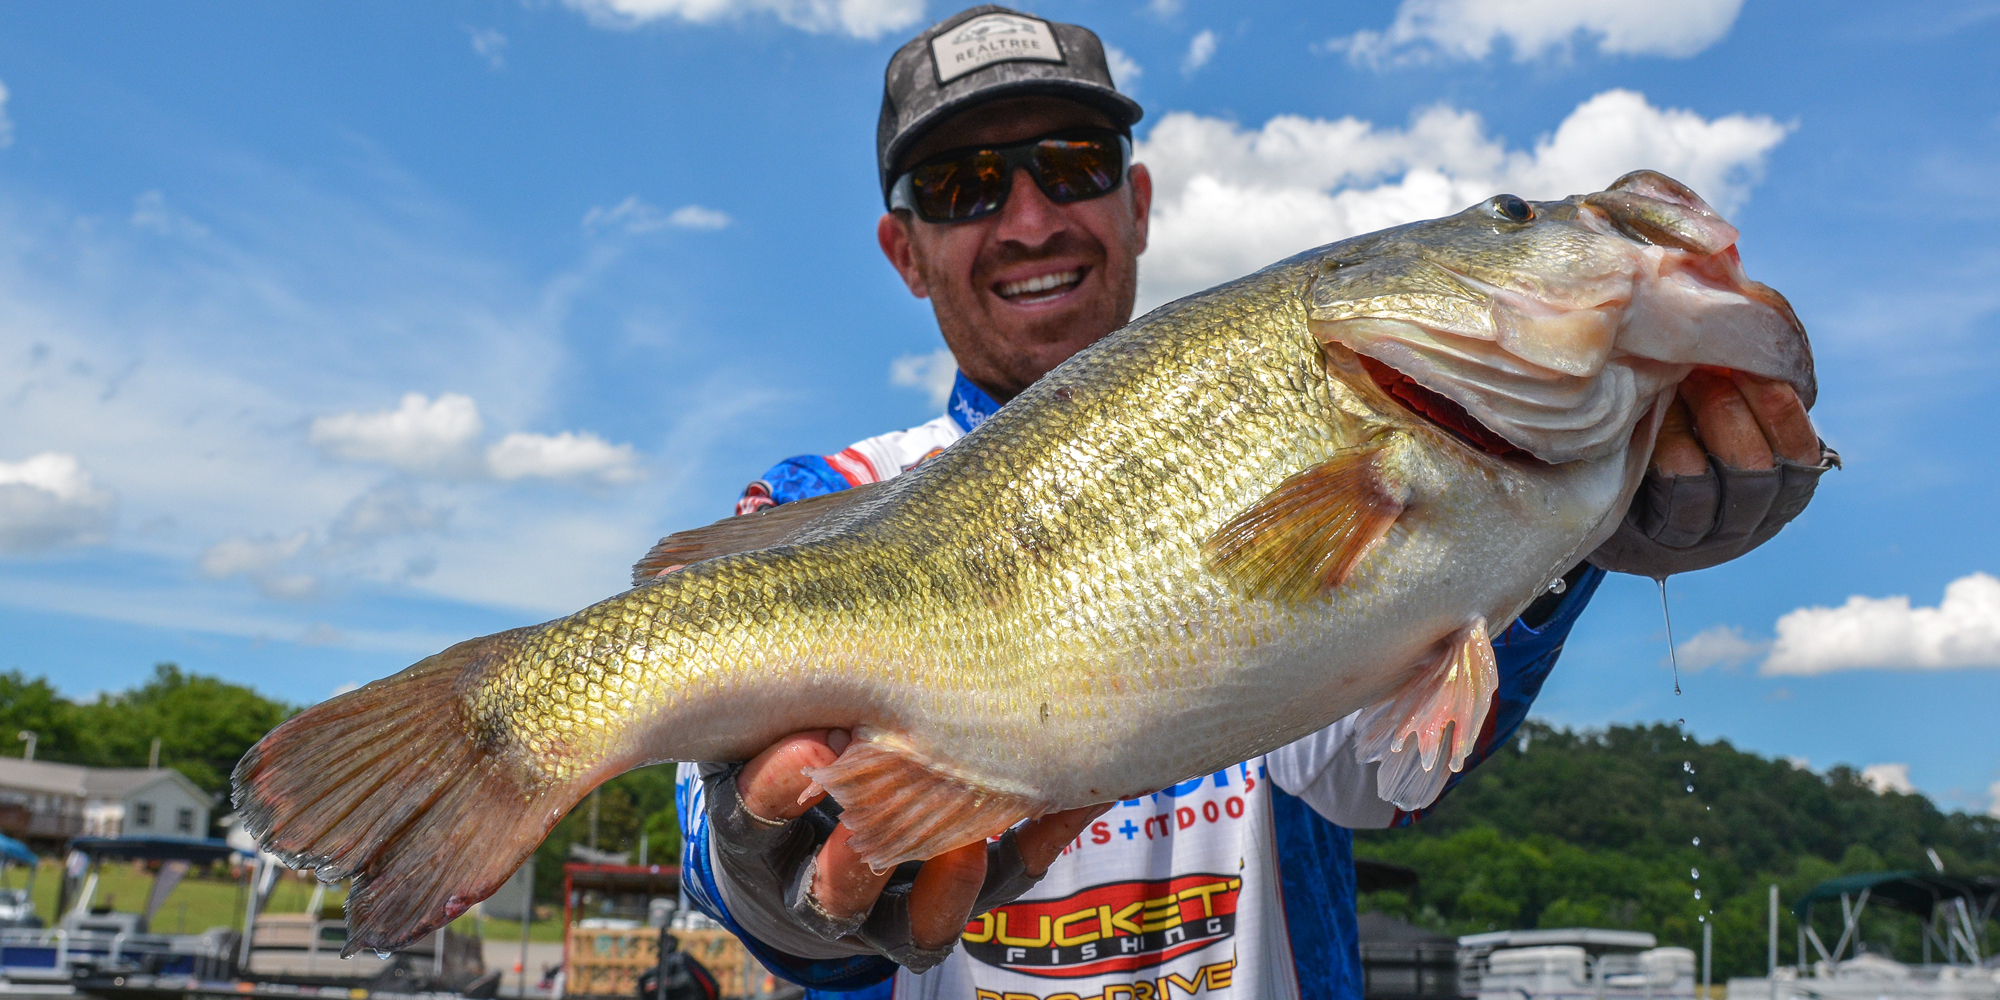 Wheeler Wallops 10 Pounder On Day 3 To Reclaim Lead At Flw Super Tournament Major League Fishing